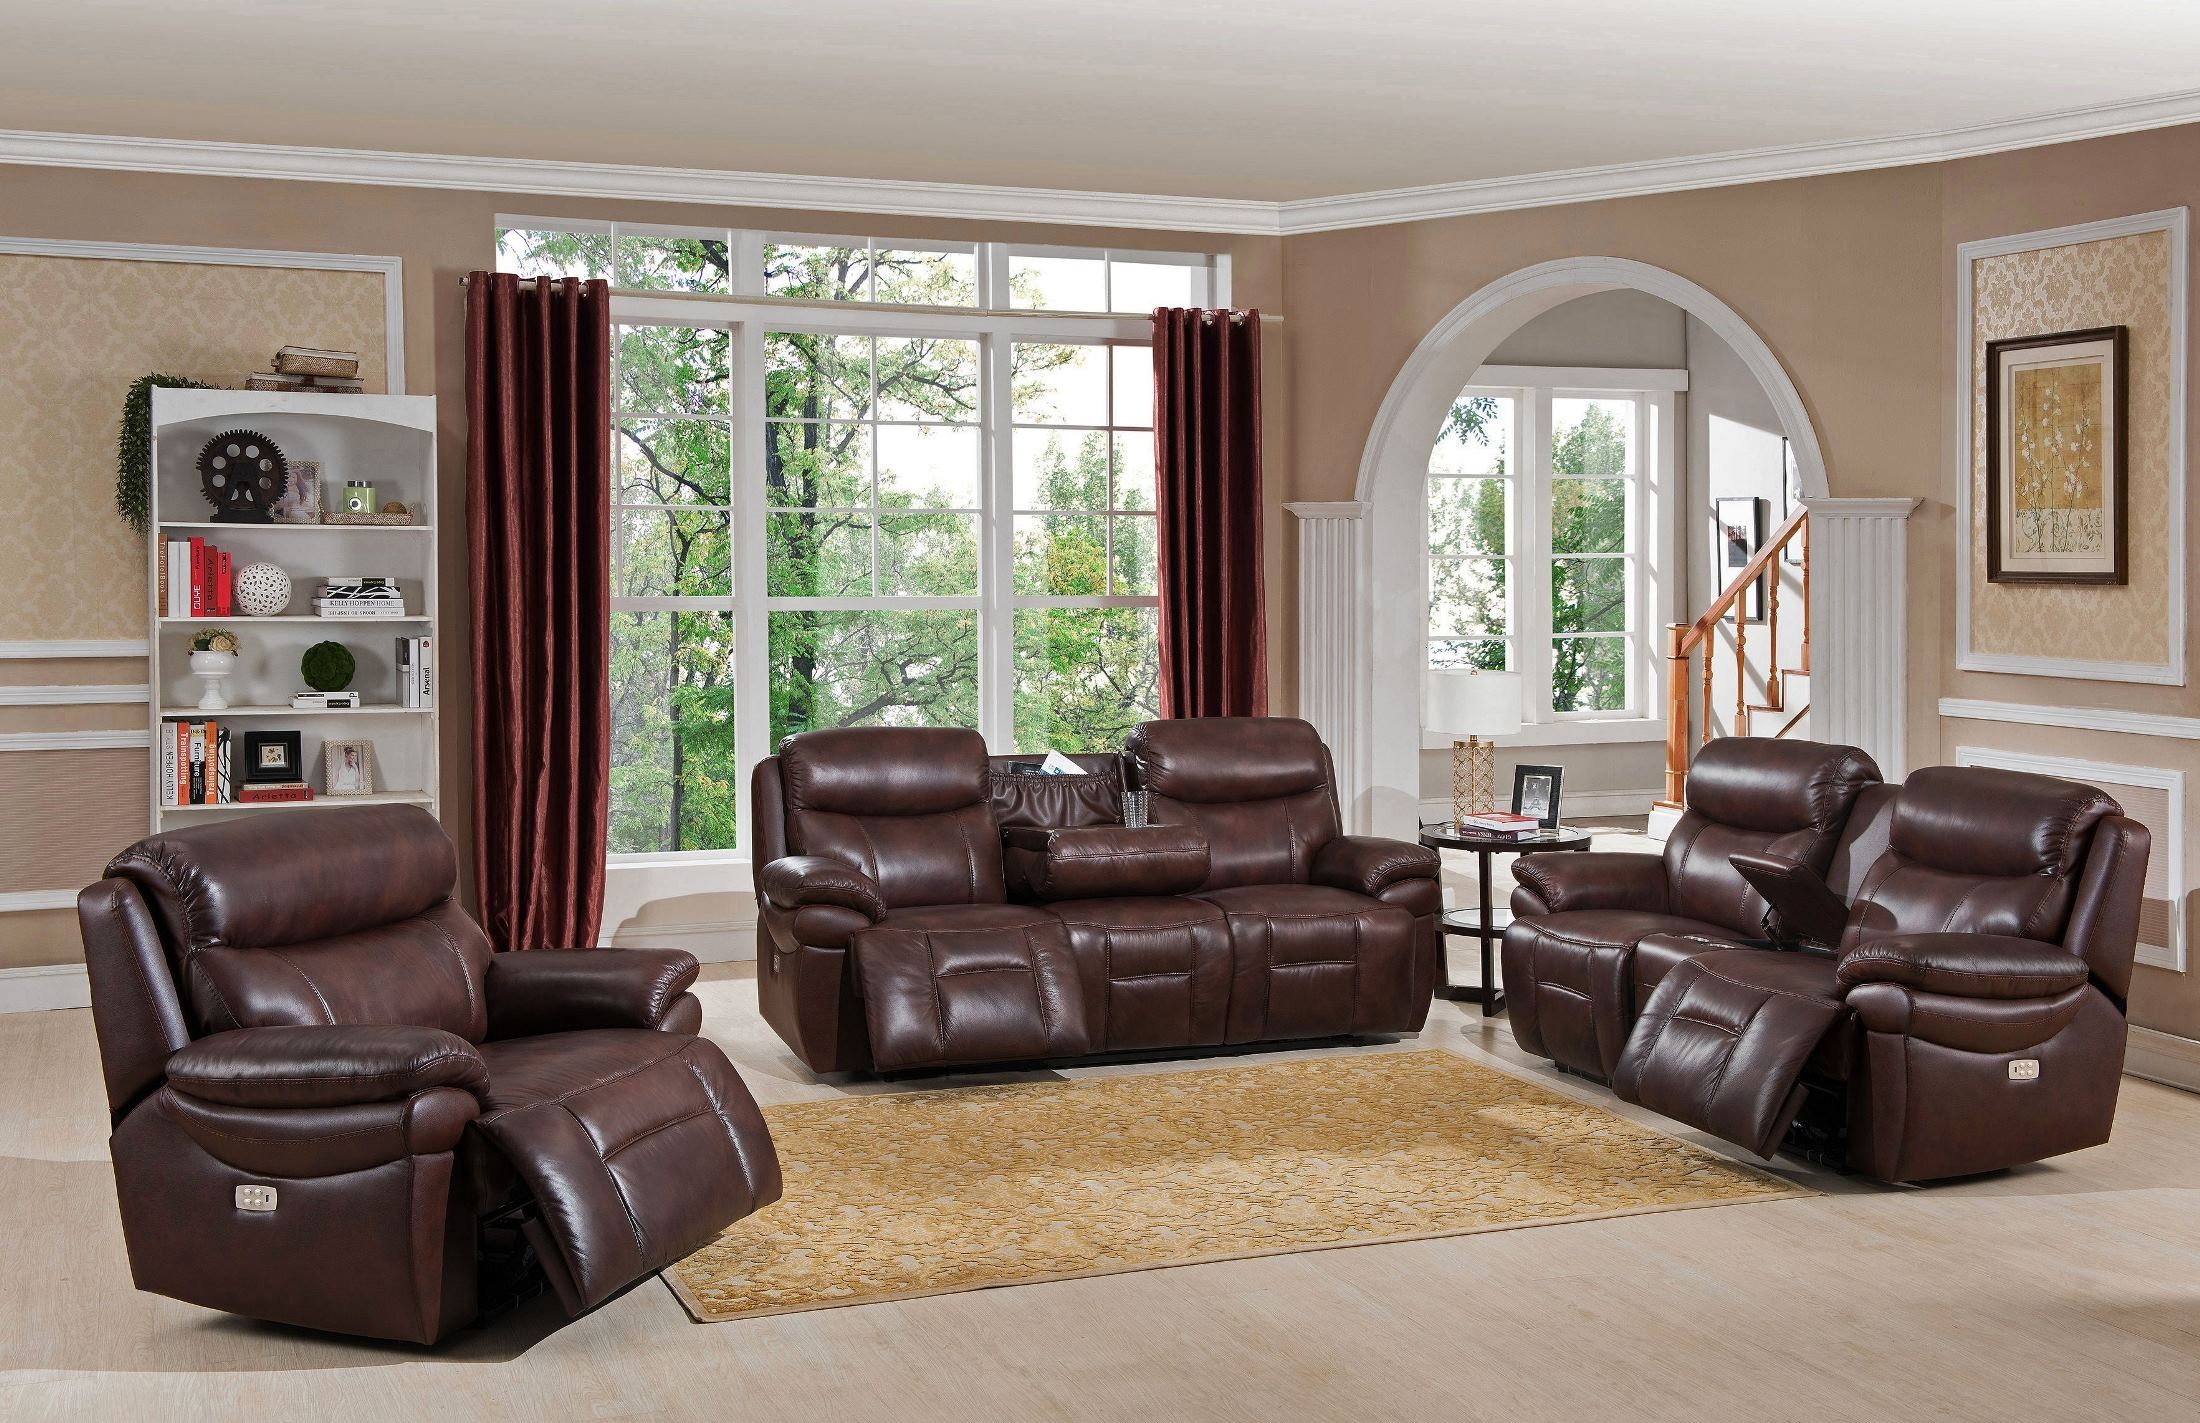 Summerlands II Brown Headrest Power Reclining Living Room Set : reclining living room - islam-shia.org